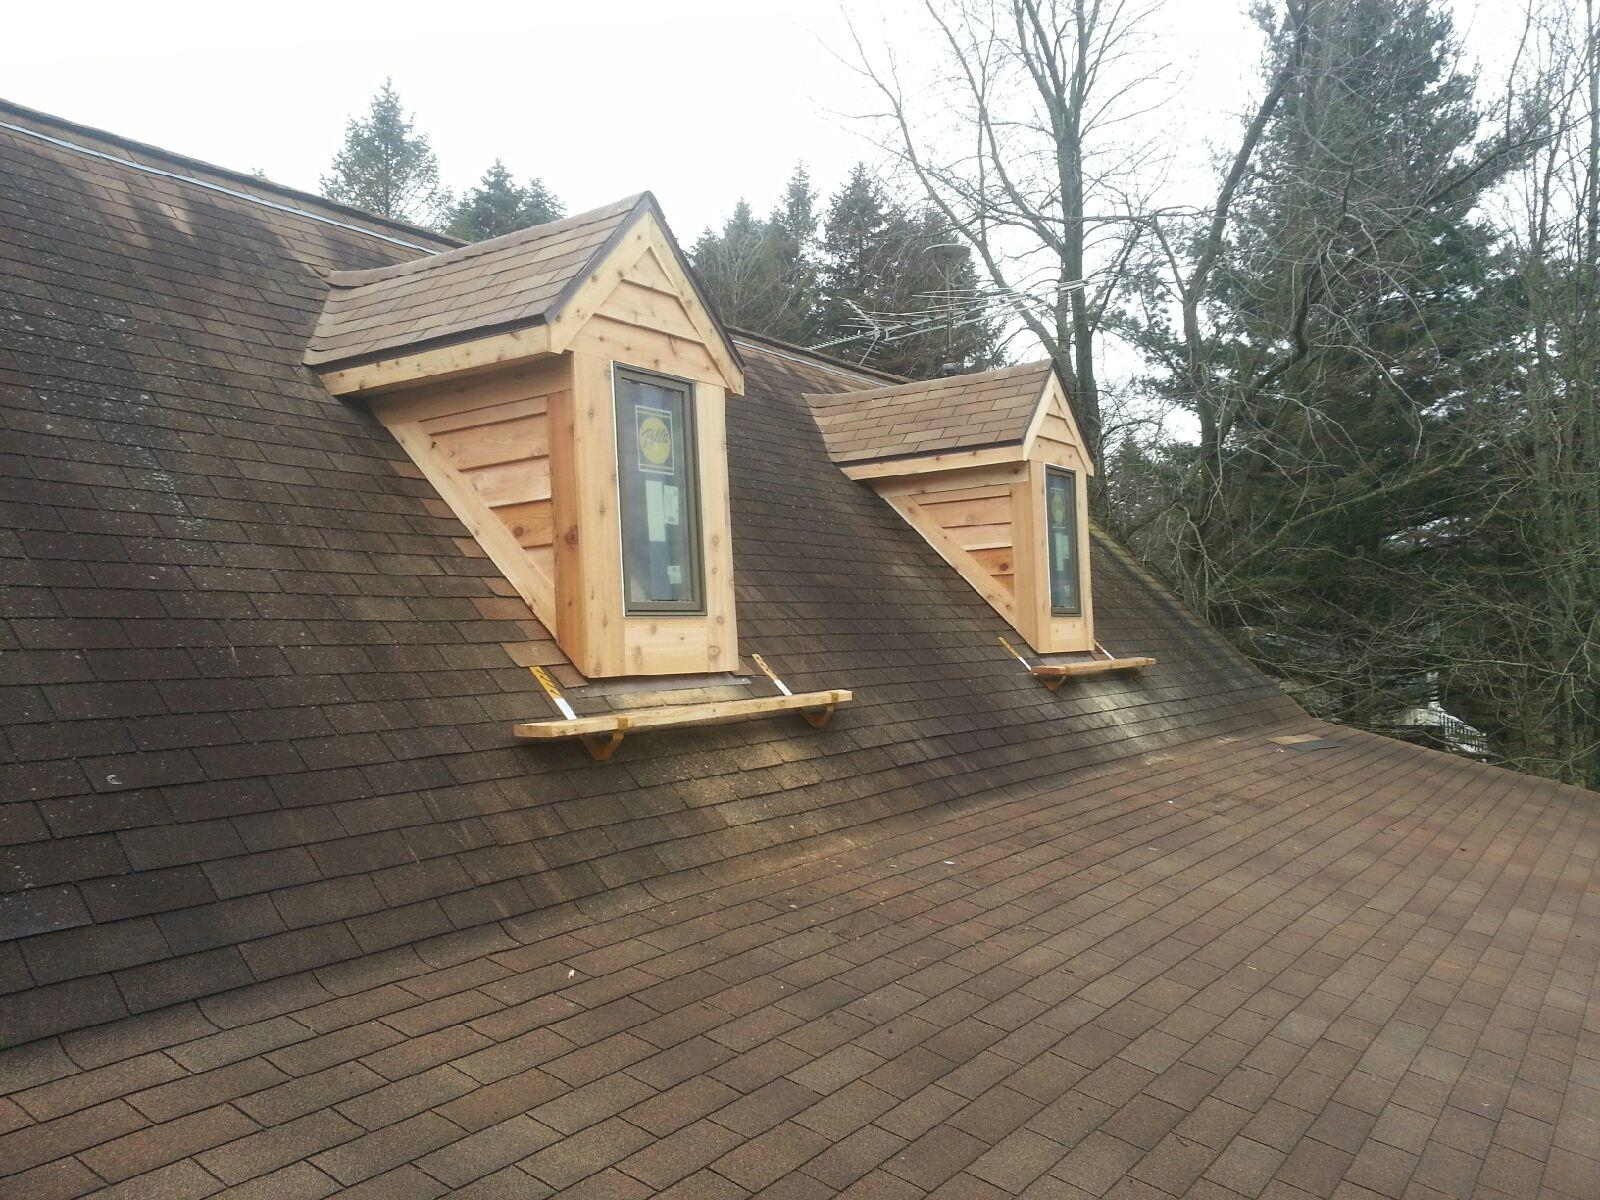 Removing Skylights and adding Windowed Dormers In Sparta, MI - After Photo